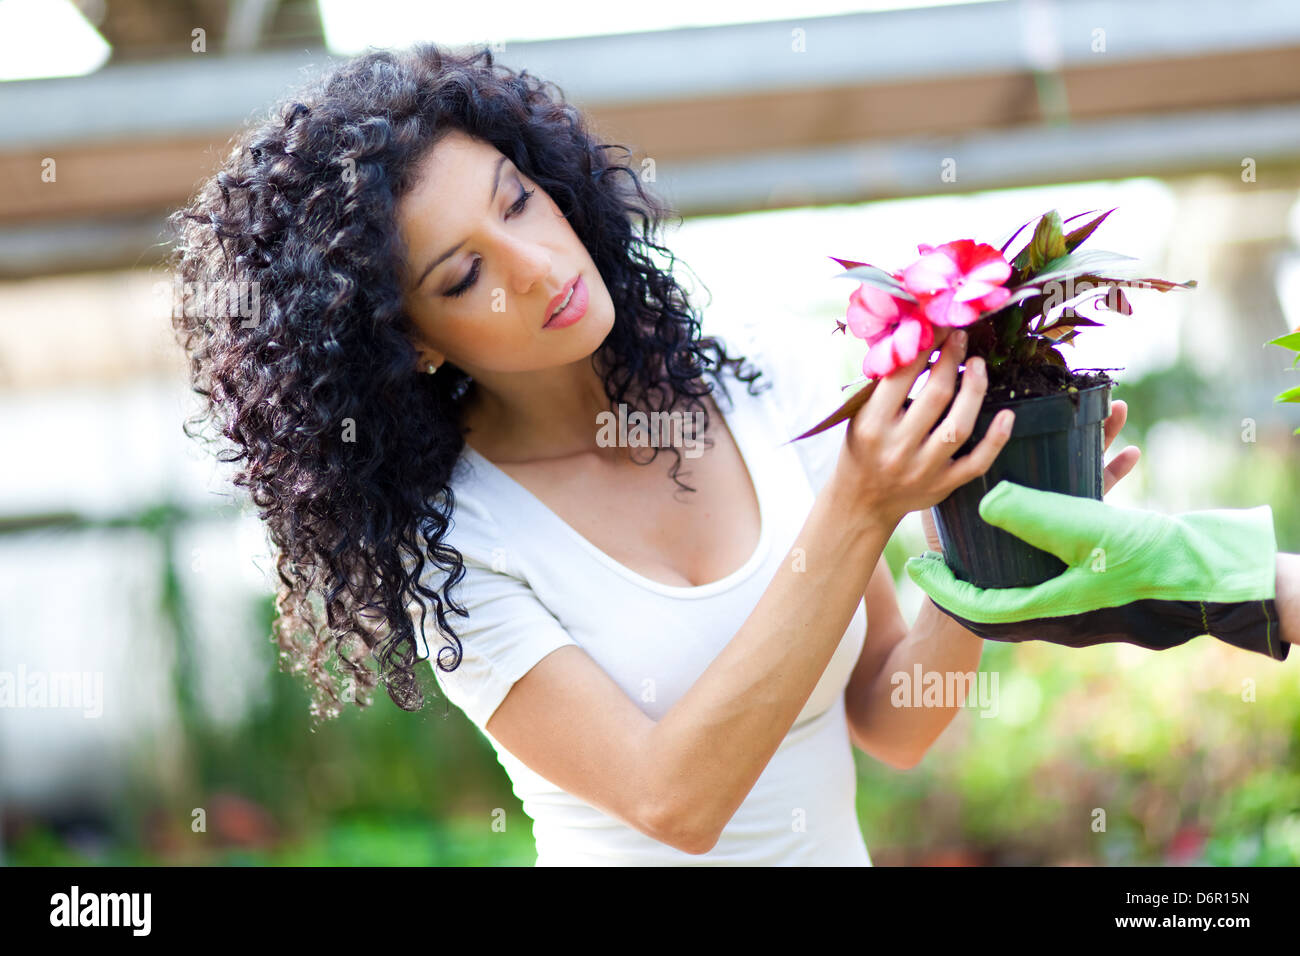 Portrait of a woman choosing flowers in a greenhouse - Stock Image